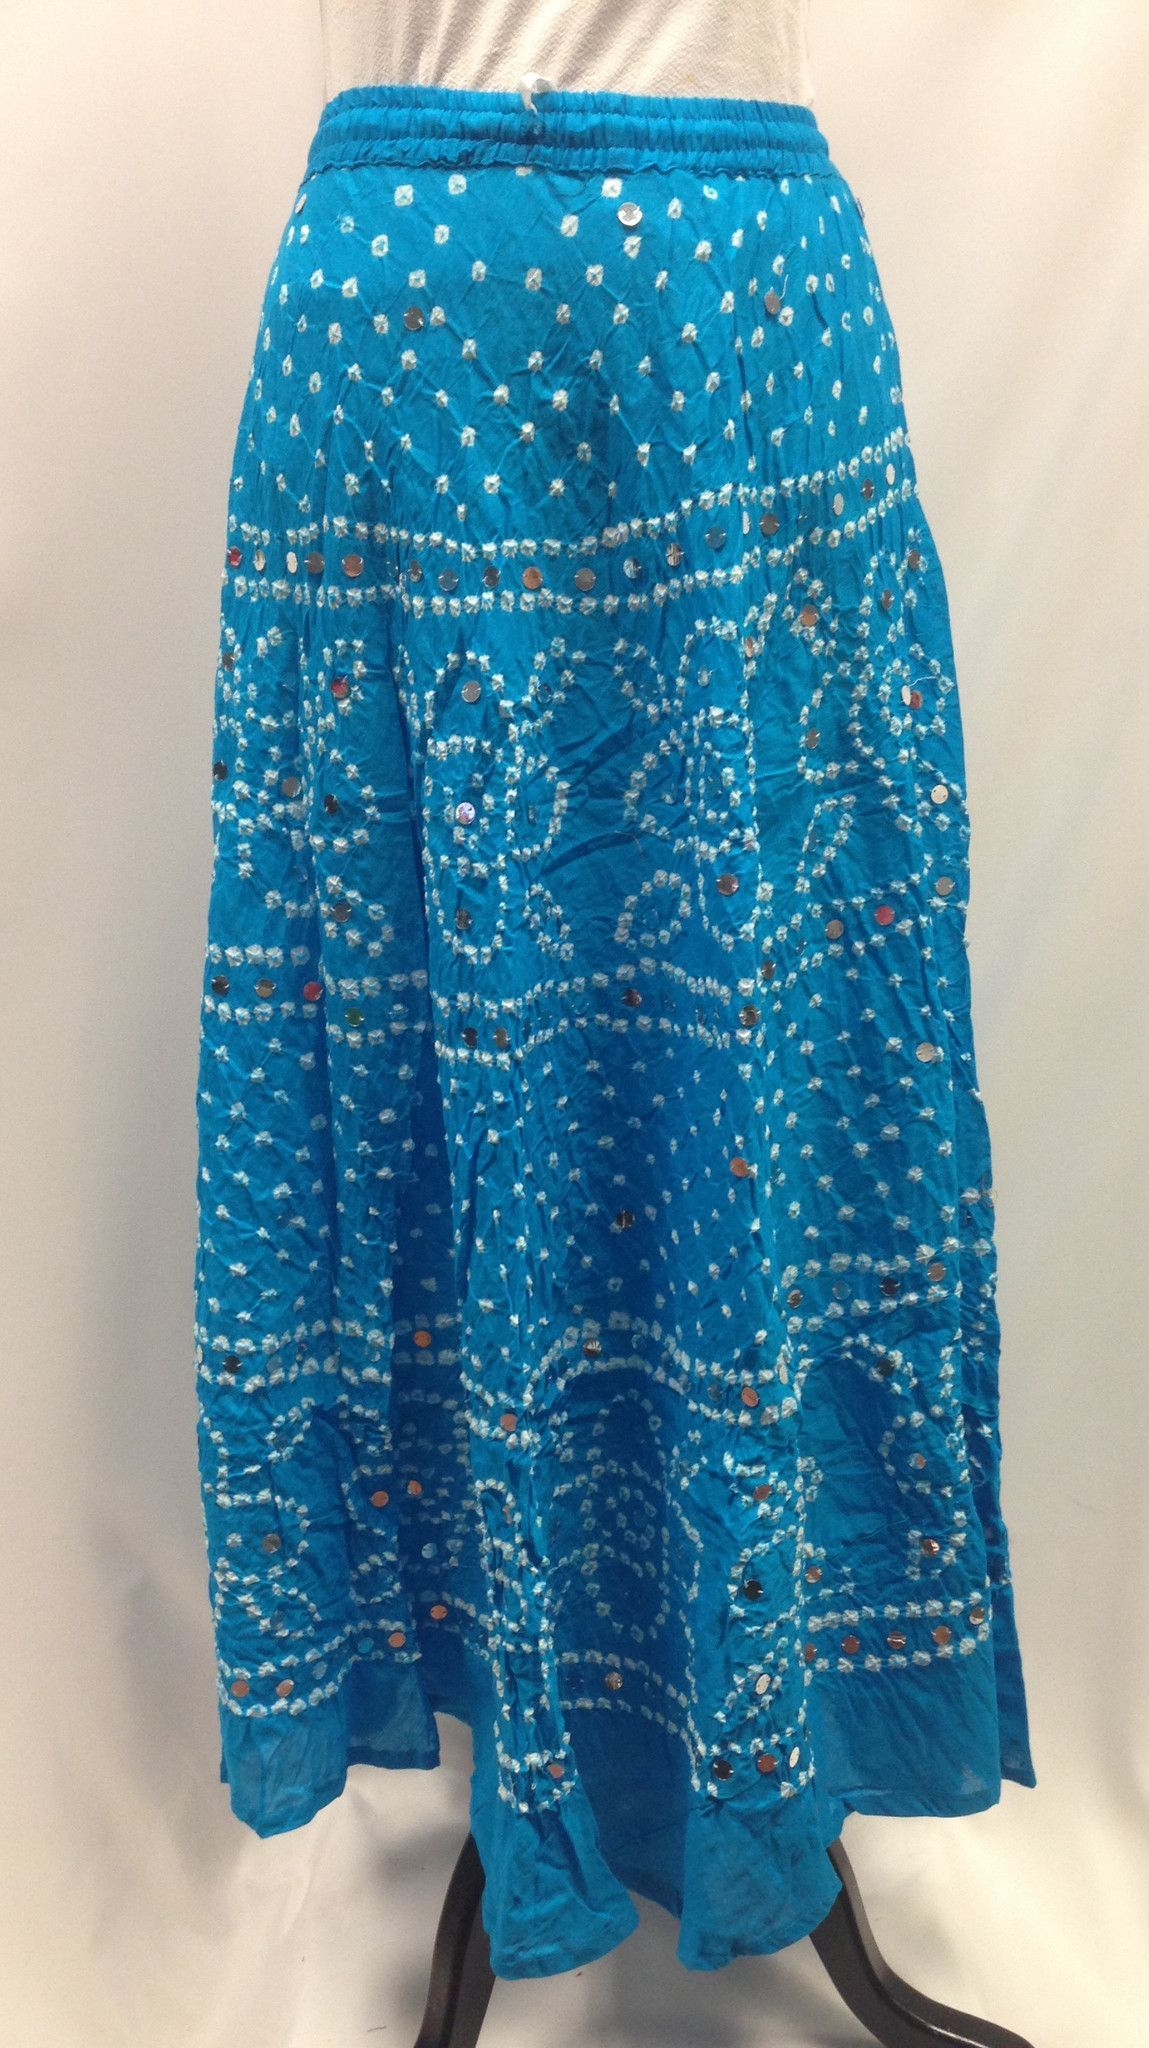 3010ac1f6 Bandhani Tie-Dye Skirt from Jaipur with Large Sequins- Sky Blue ...